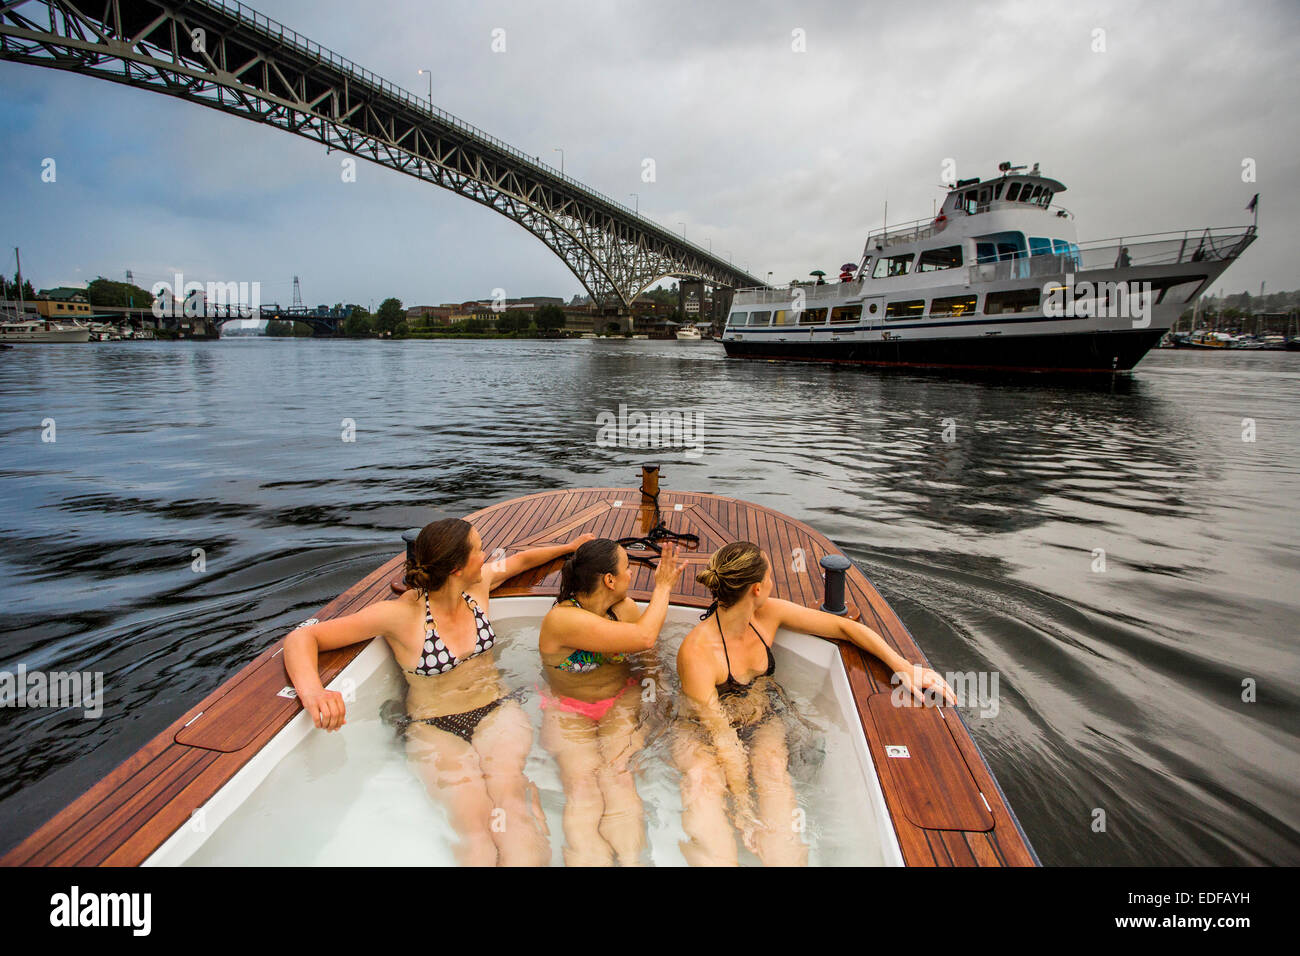 The young women enjoy a hot tub boat in Lake Union while a tour boat cruises along the calm waters. - Stock Image